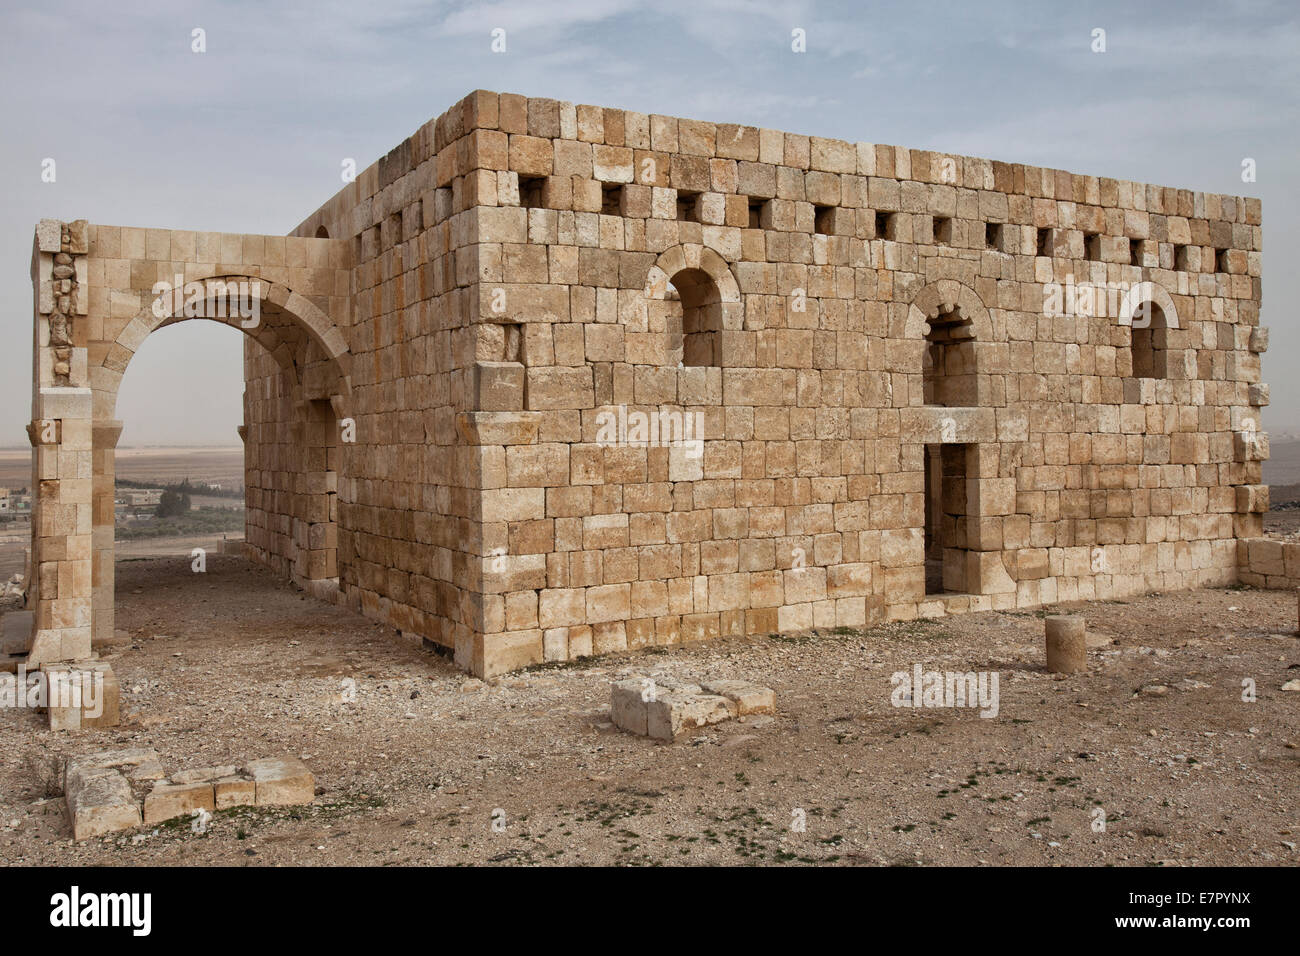 Exterior view of Qasr Hallabat an Umayyad Caliphate architecture style mosque located in Jordan's eastern deserti Stock Photo